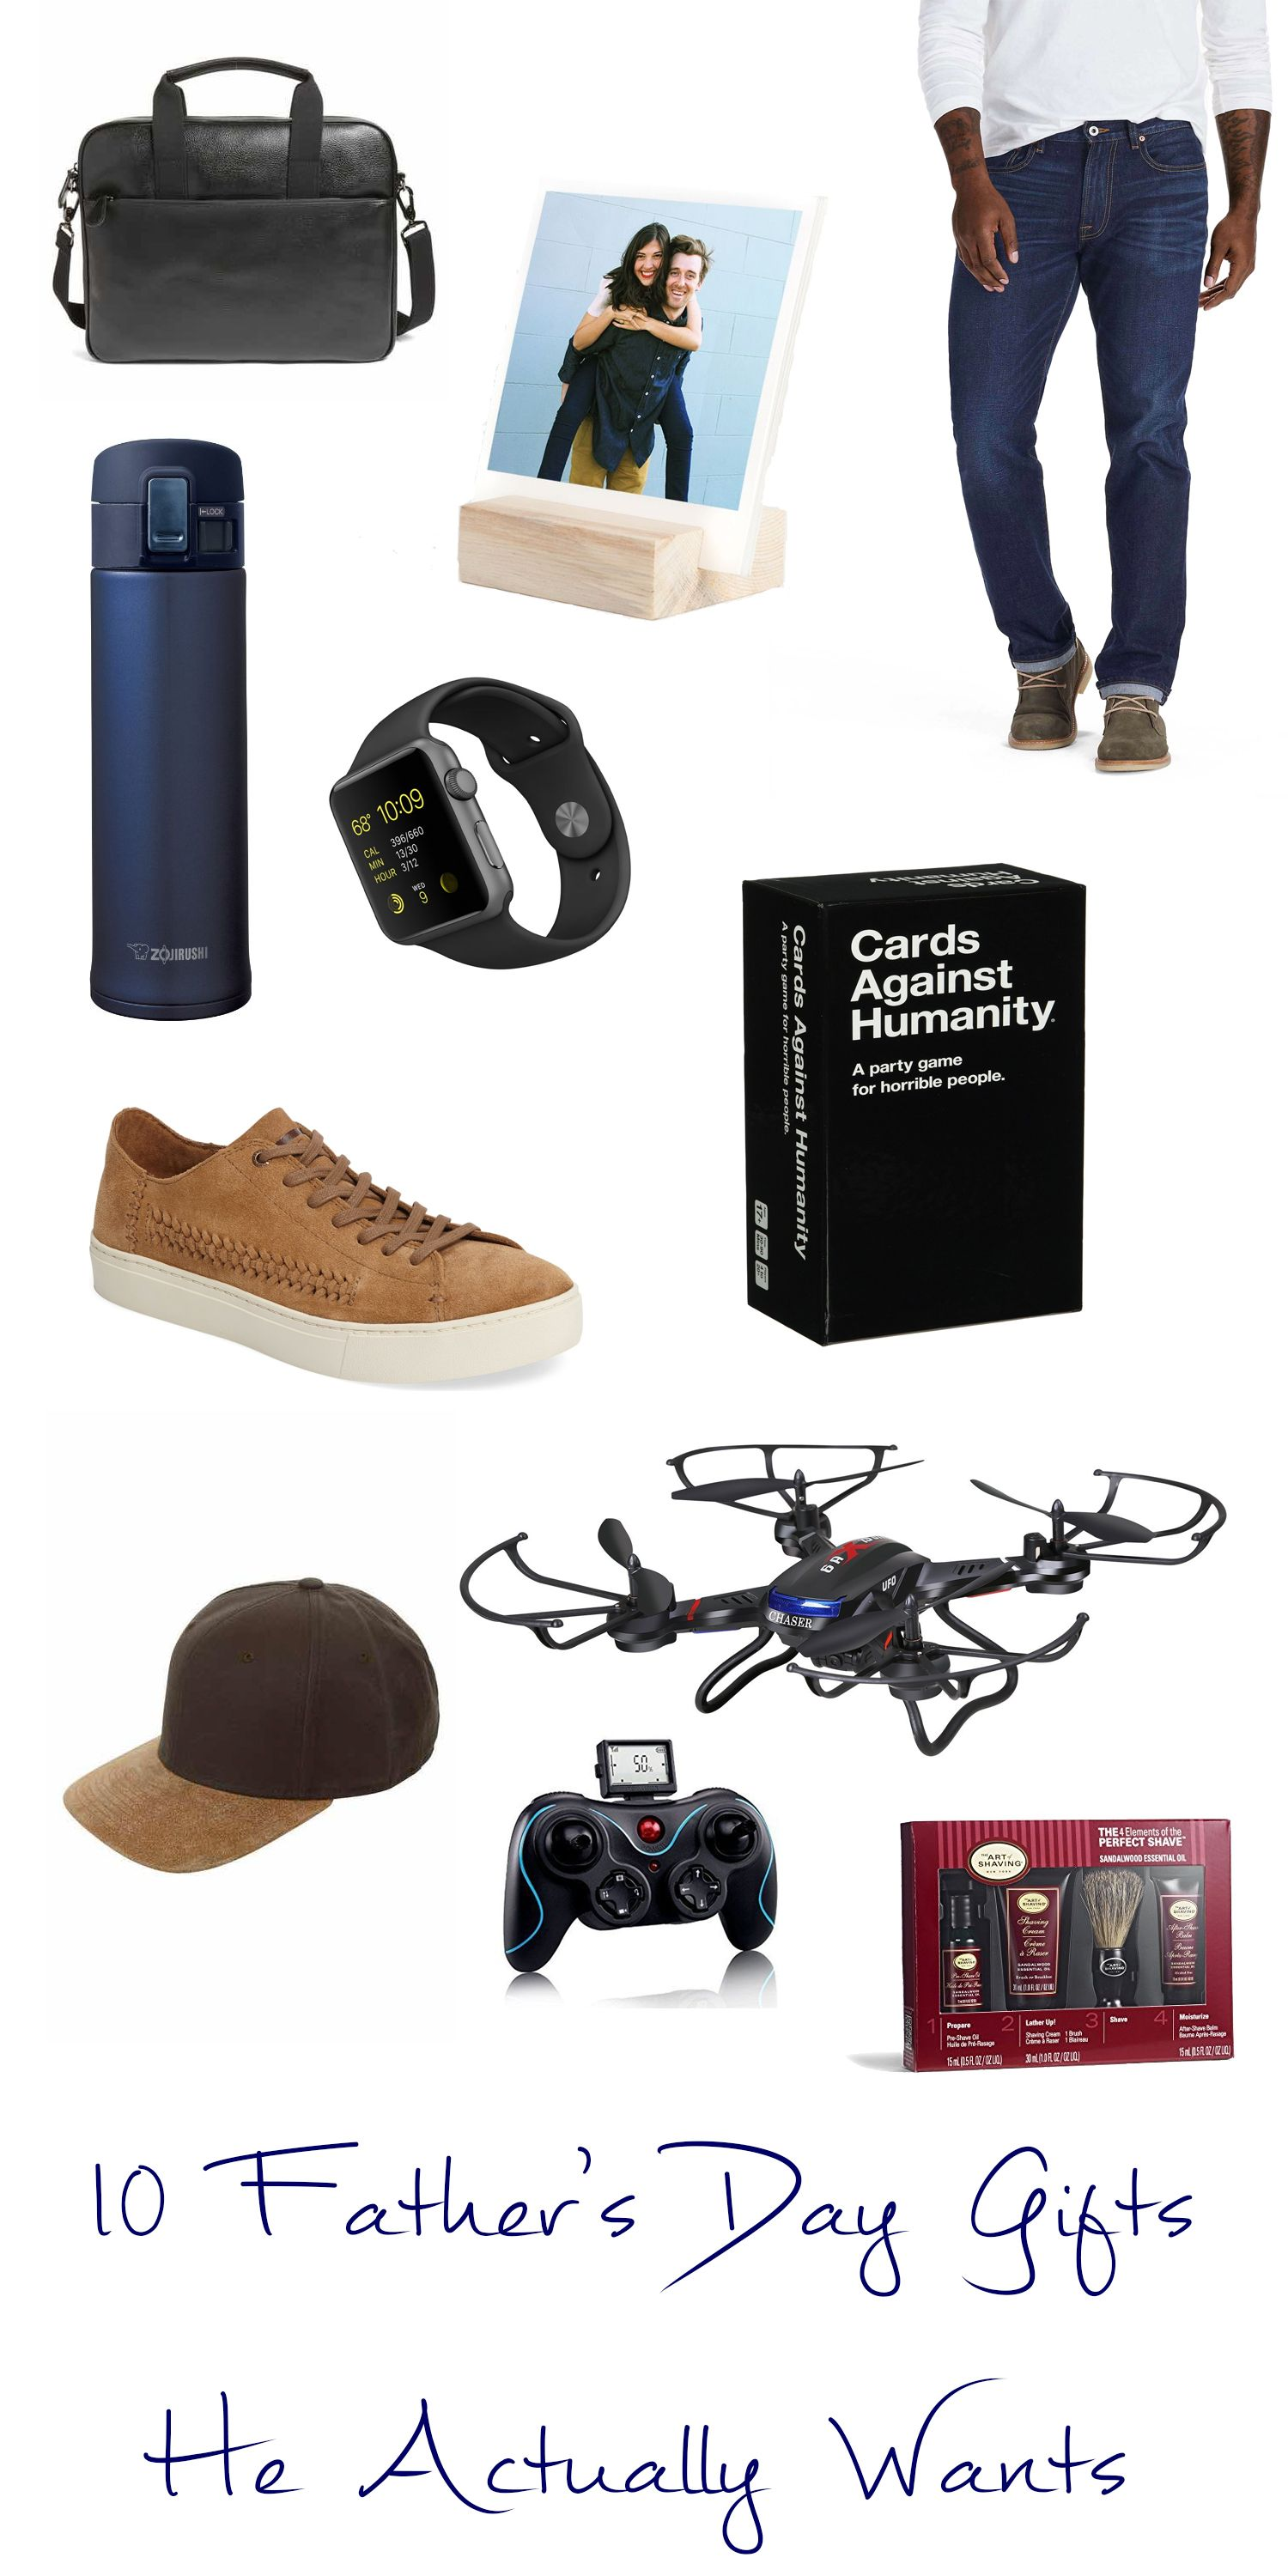 10 Fathers Day Gifts Your Husband Will Actually Be Excited To Receive